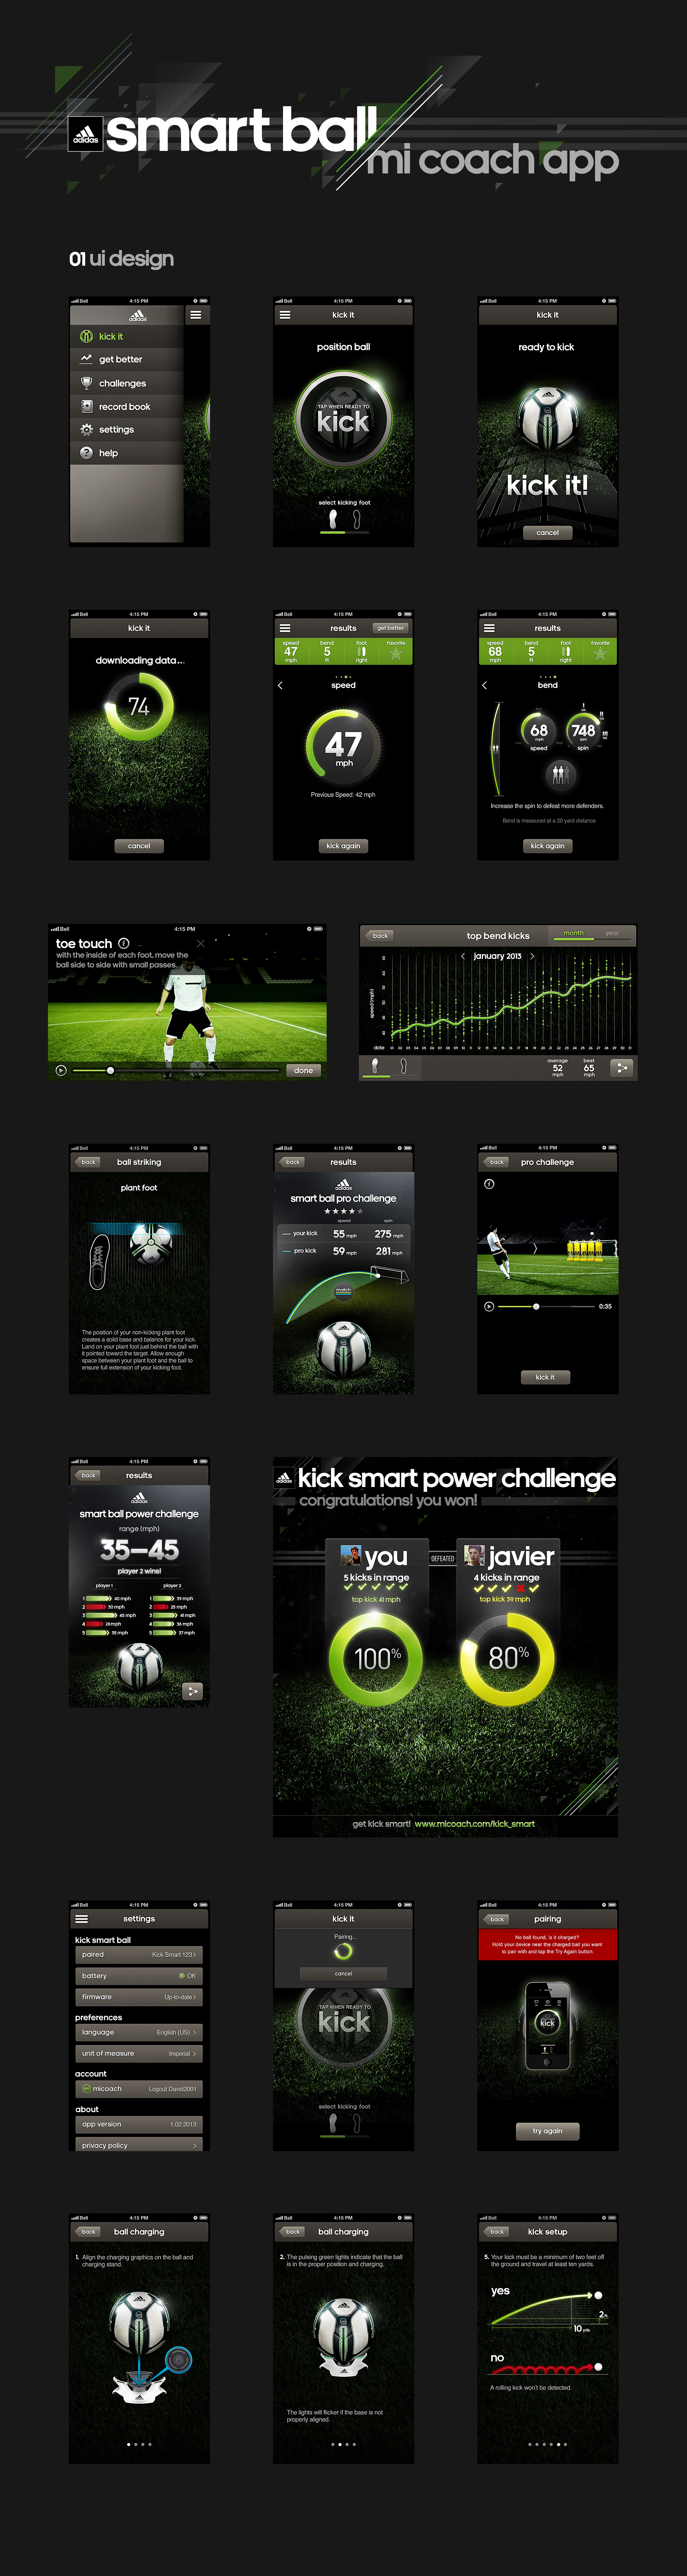 adidas micoach smart ball android